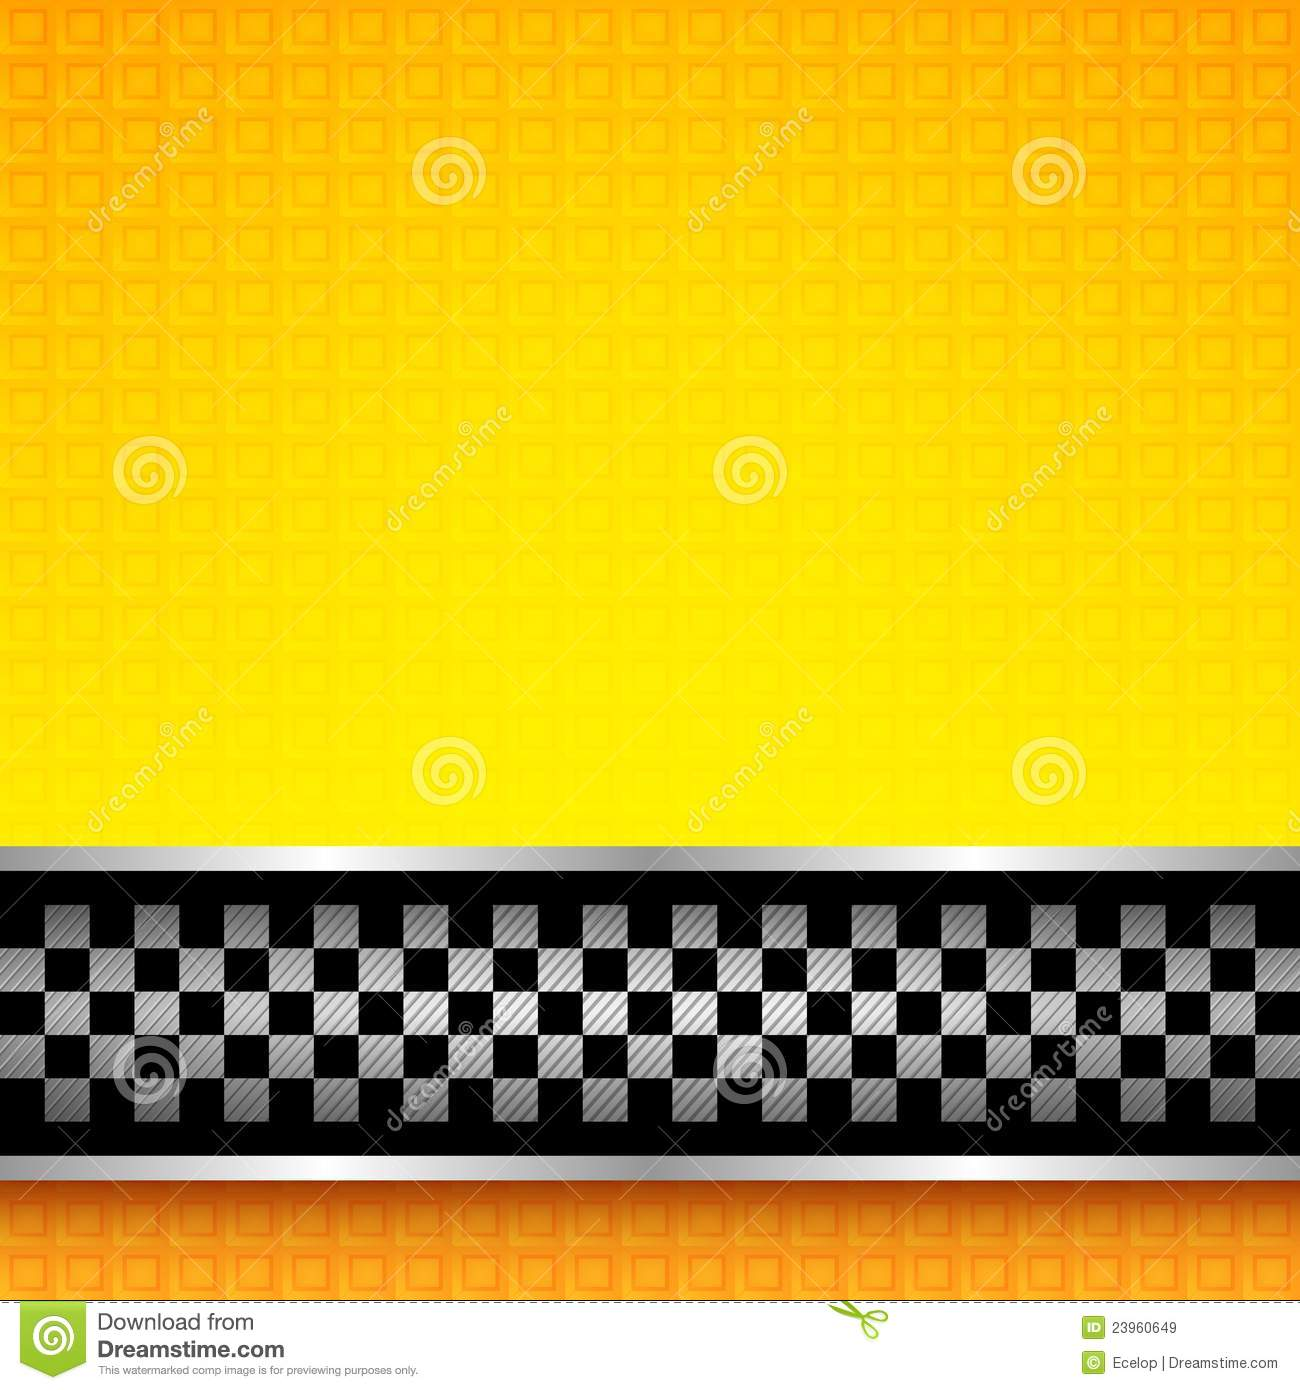 Racing Checkered Flag >> Racing Background Template Royalty Free Stock Images - Image: 23960649